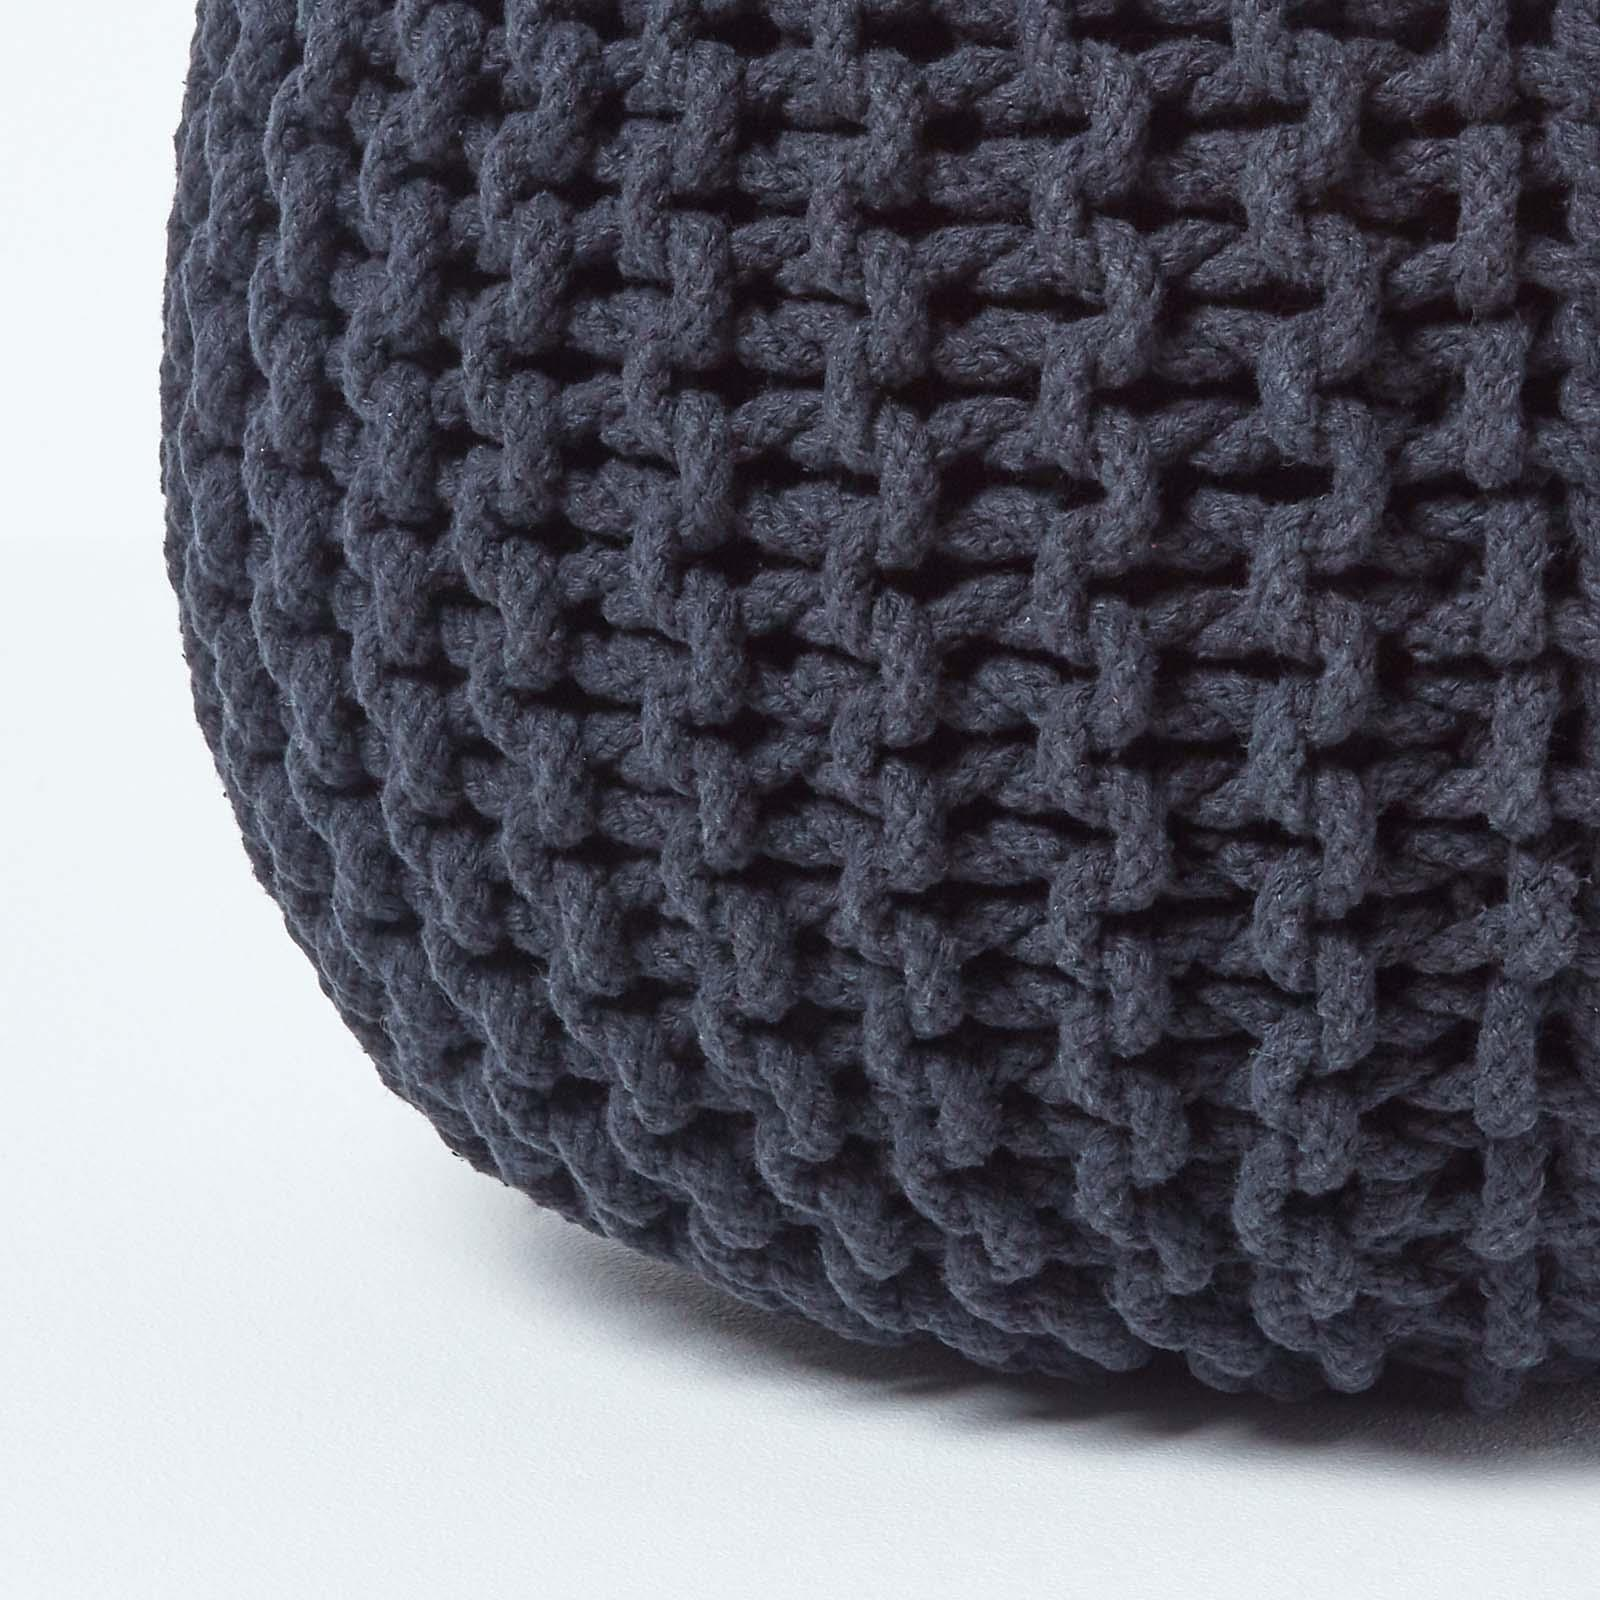 Hand-Knitted-100-Cotton-Pouffes-Round-Sphere-Or-Cube-Square-Chunky-Footstools thumbnail 7